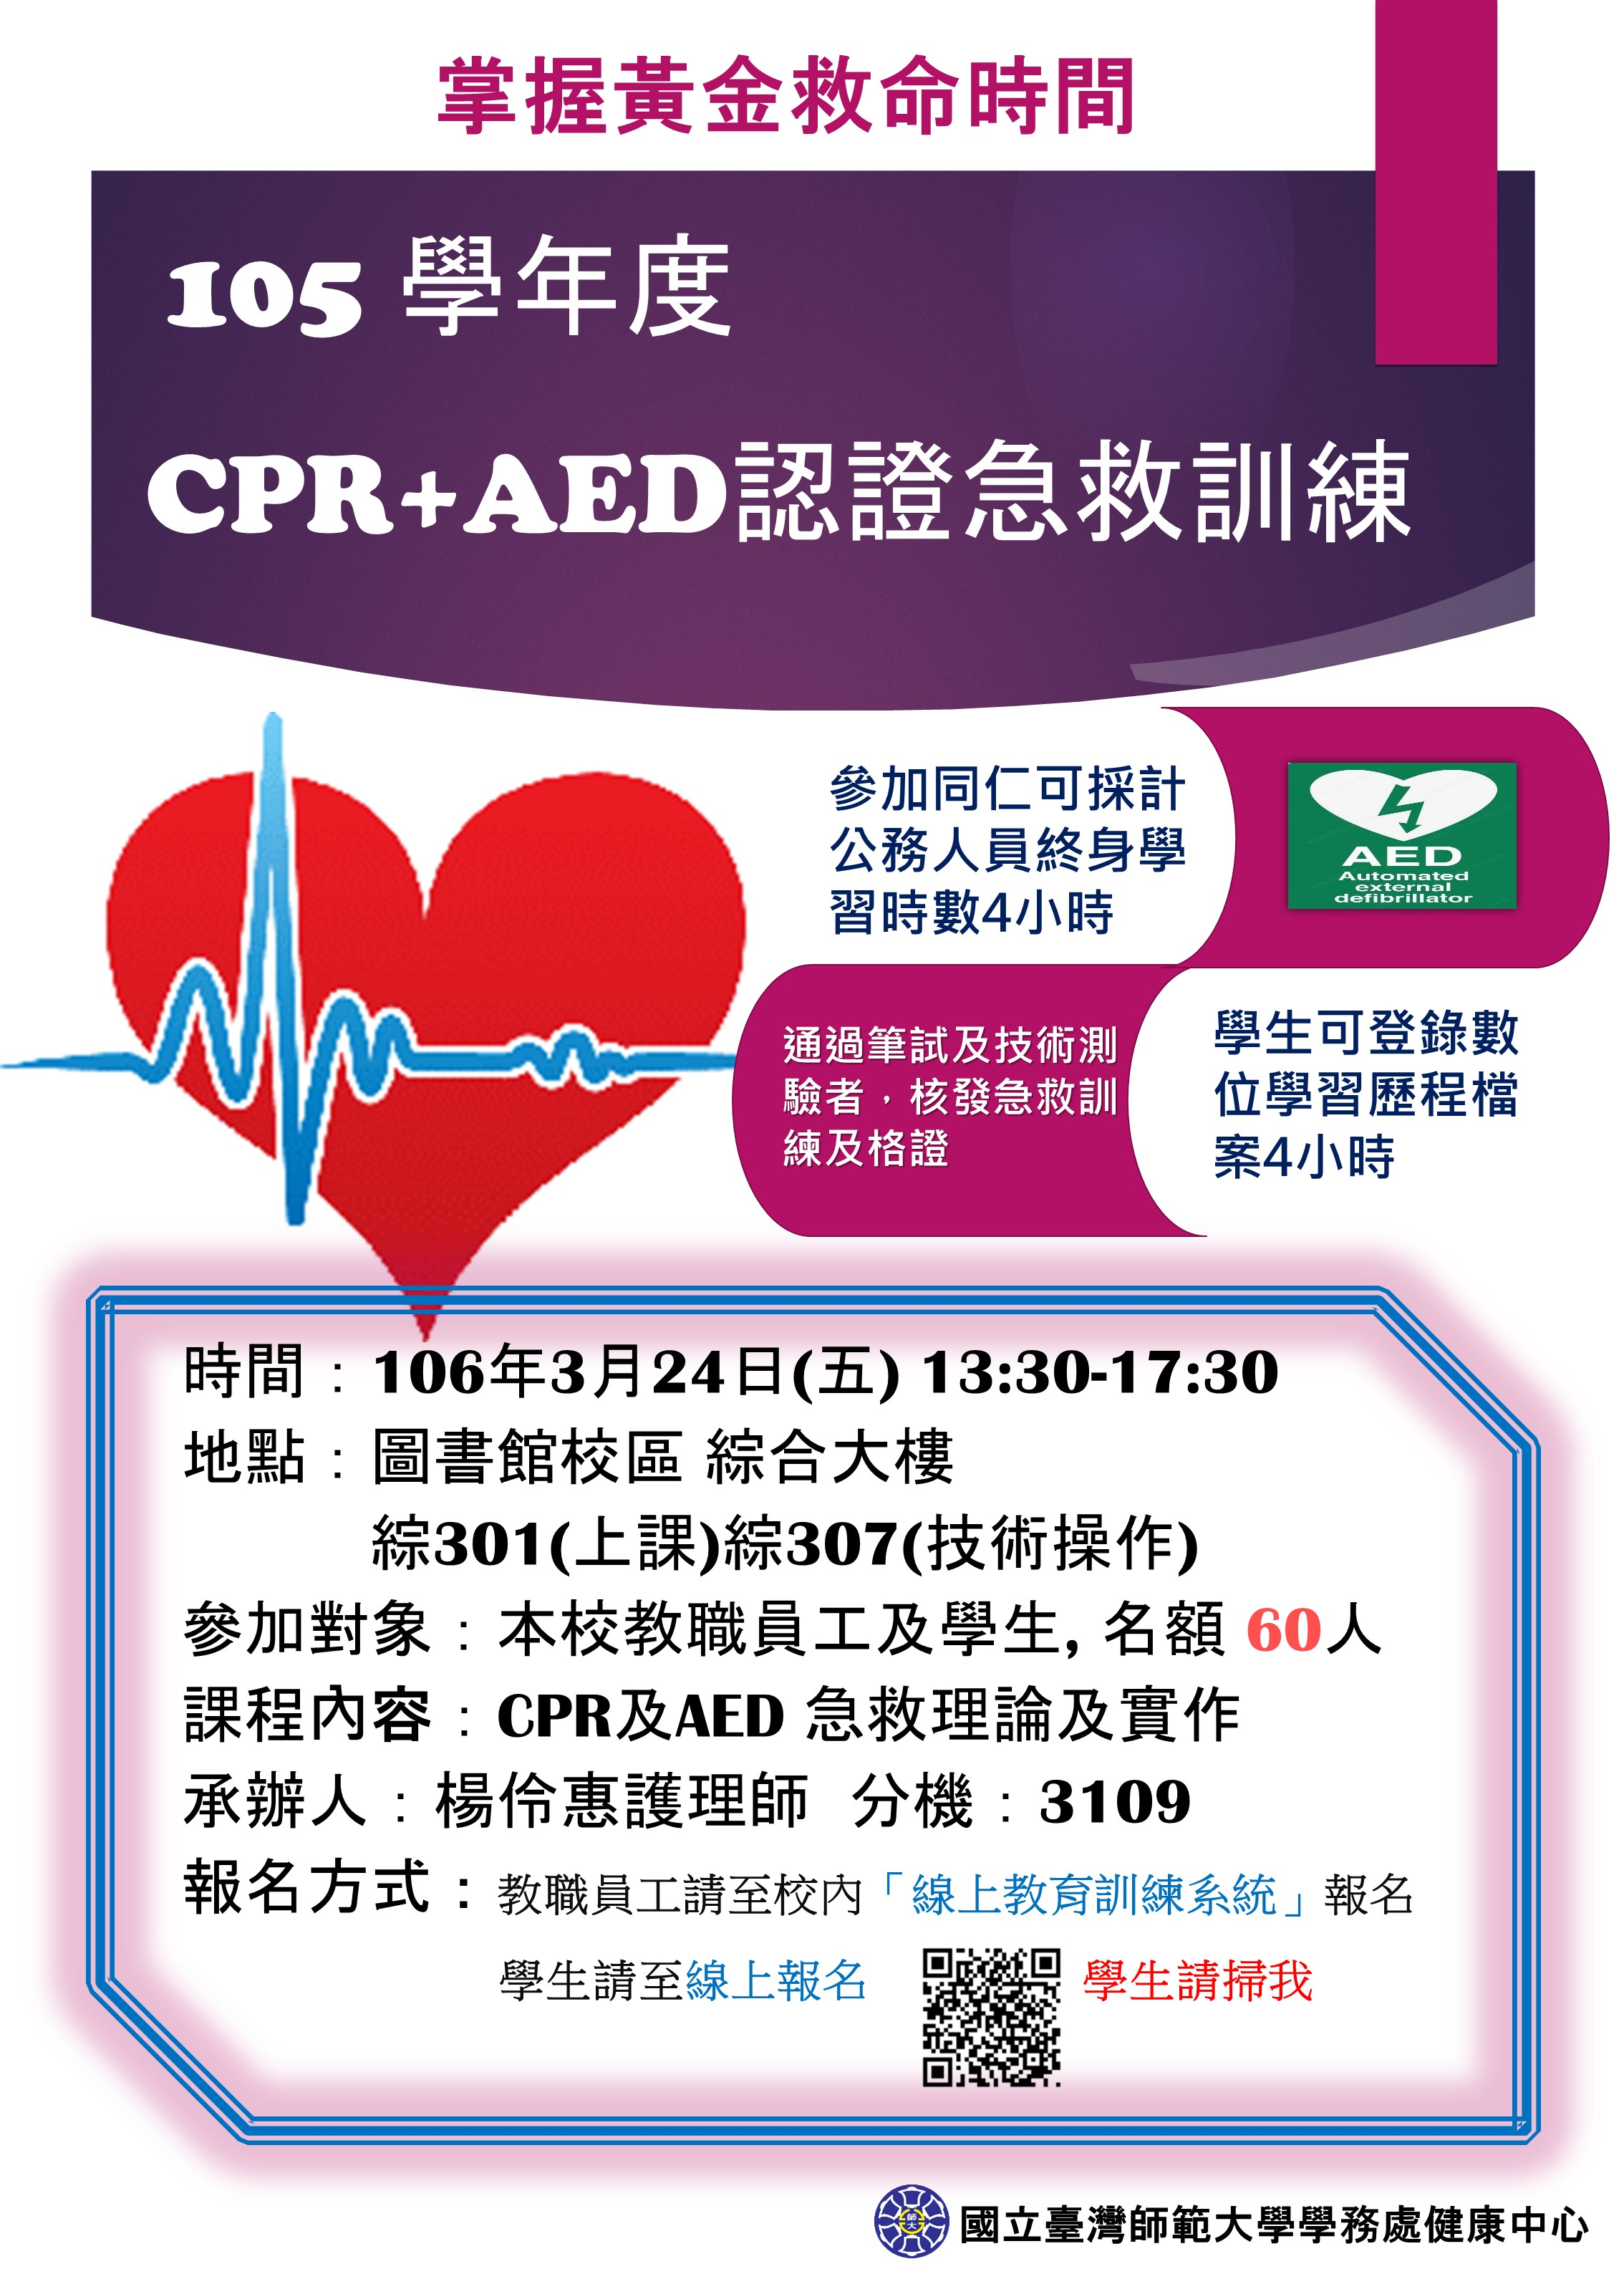 CPR+AED認證急救訓練